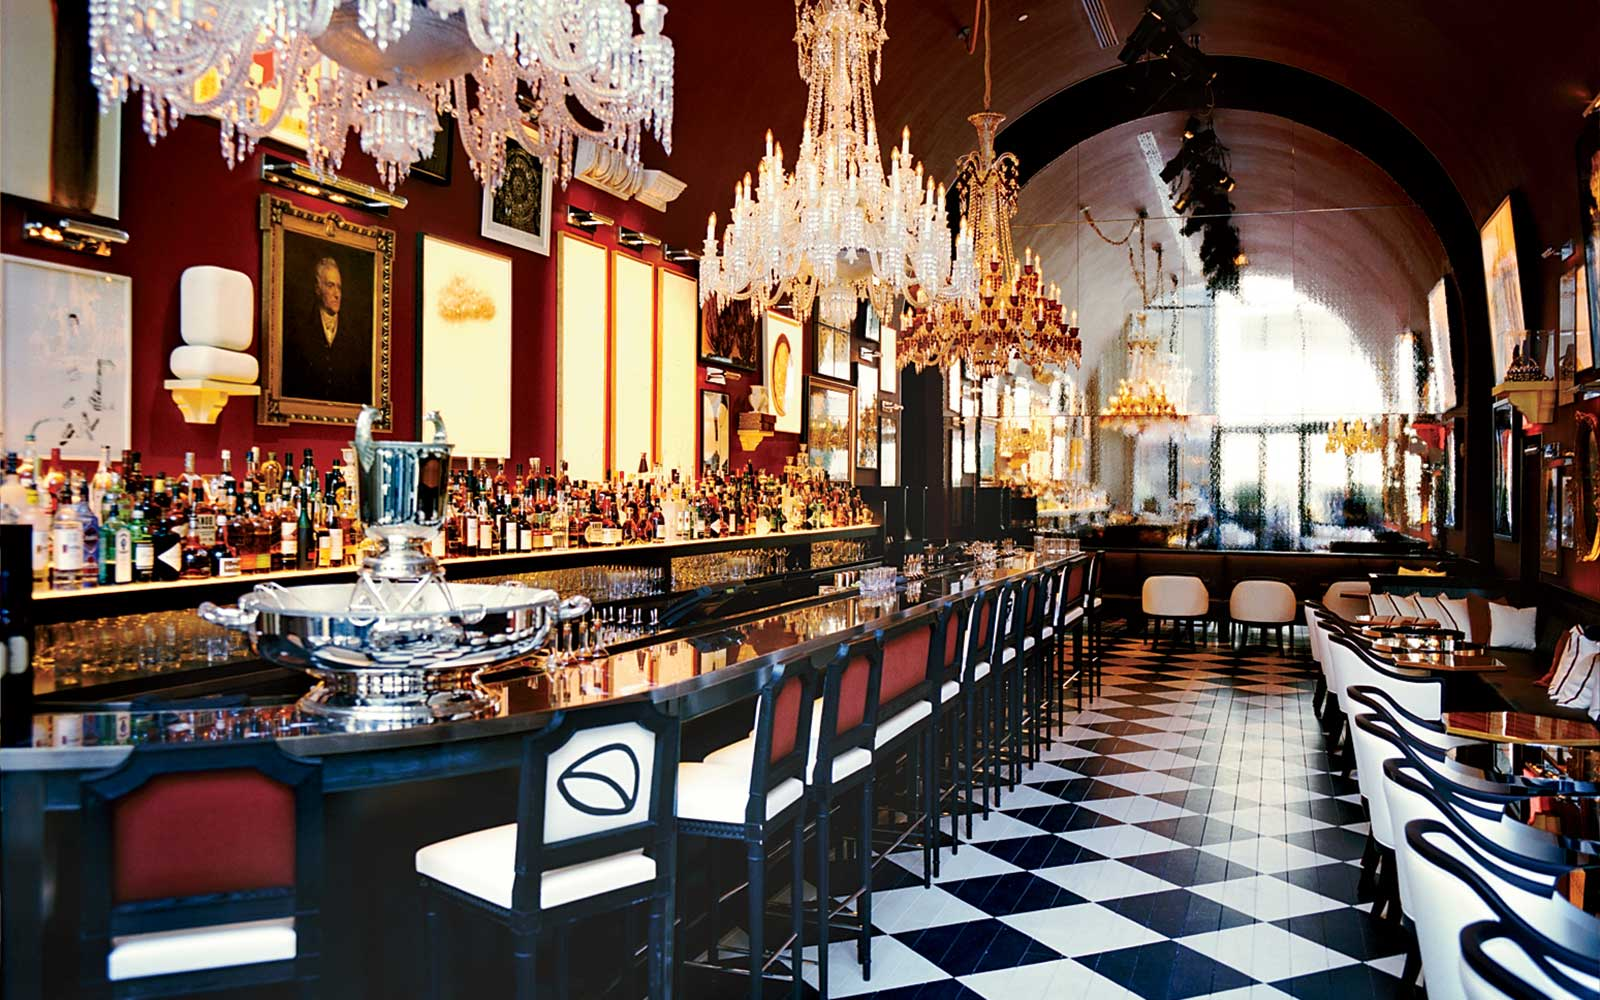 The main bar, decorated with 18th-century and contemporary art